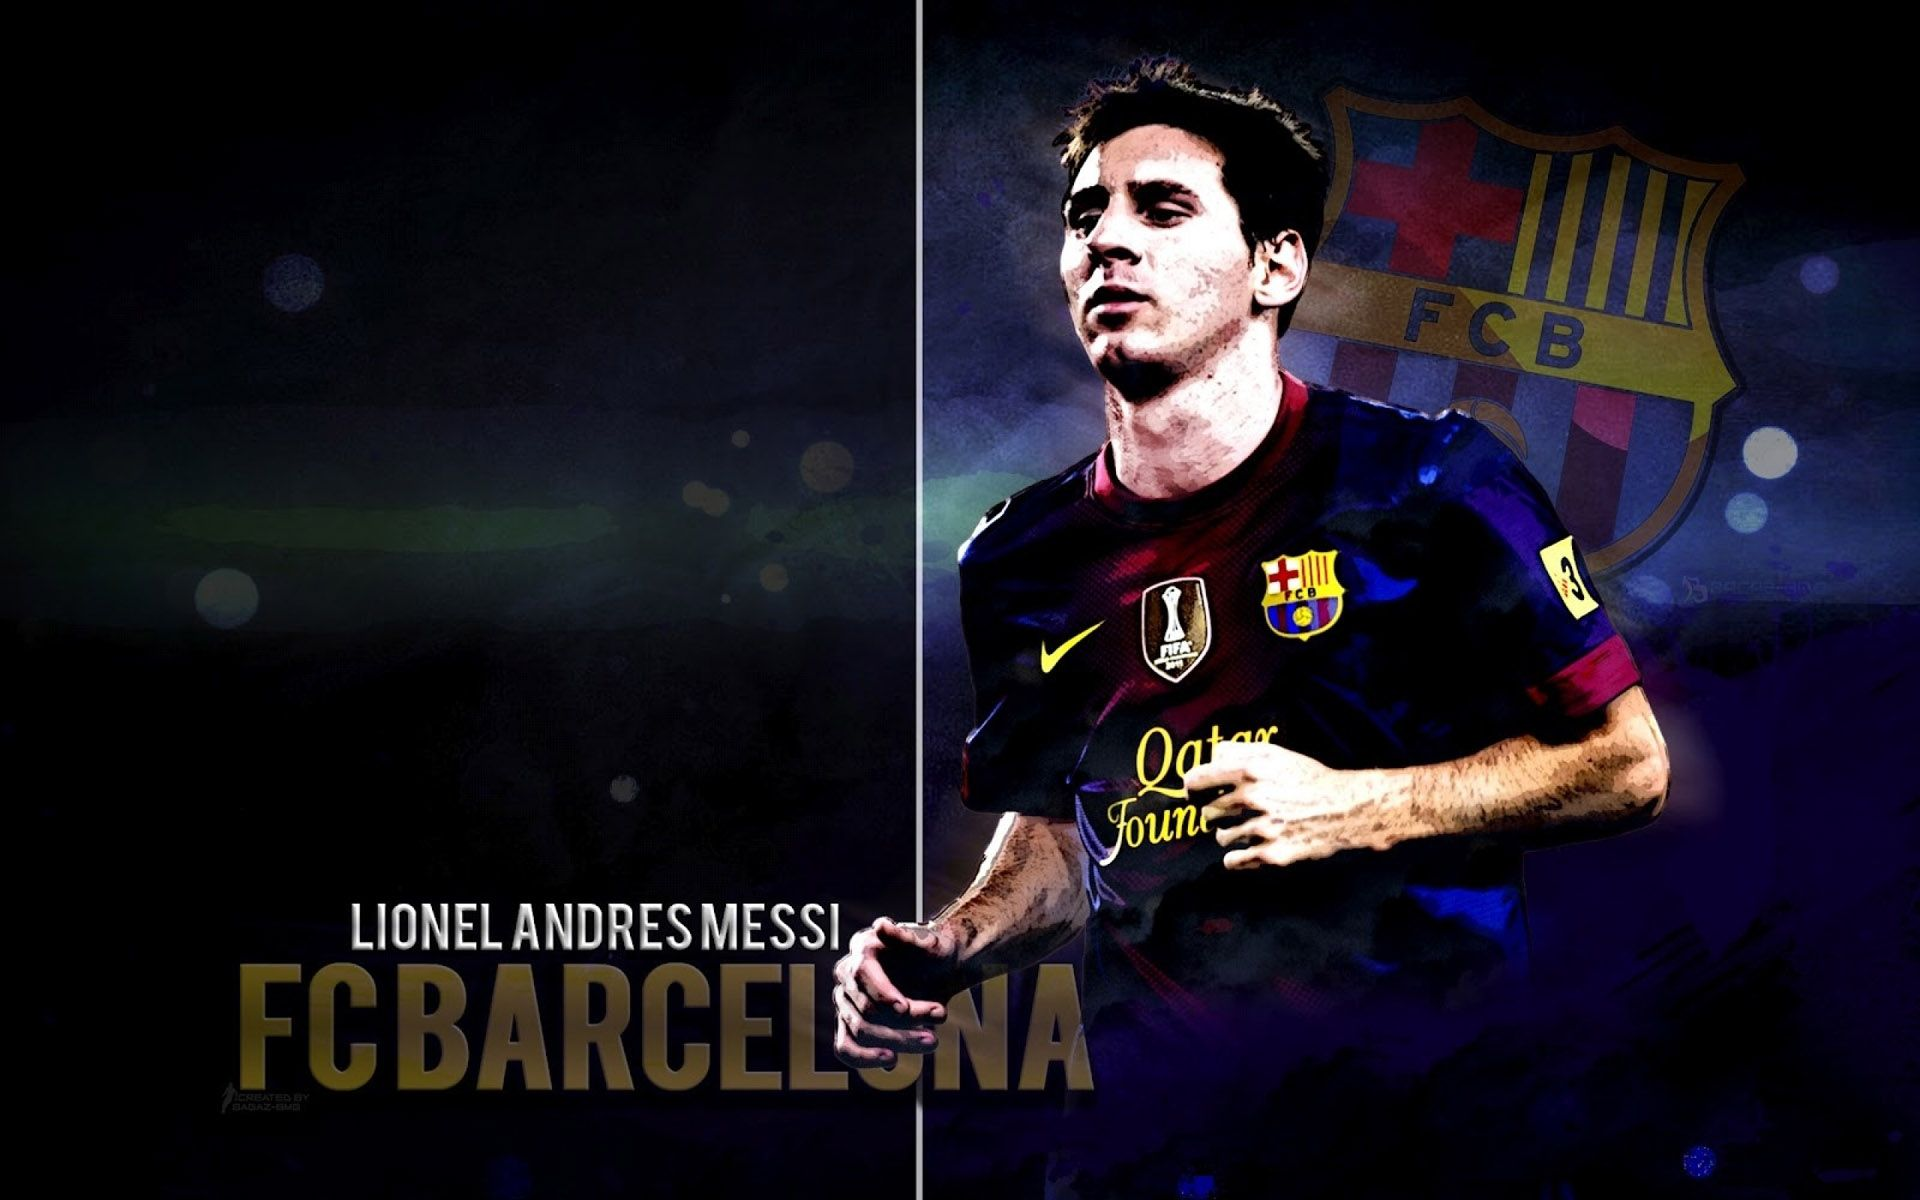 Collection of Messi Wallpaper on HDWallpapers 1920—1200 Wallpaper